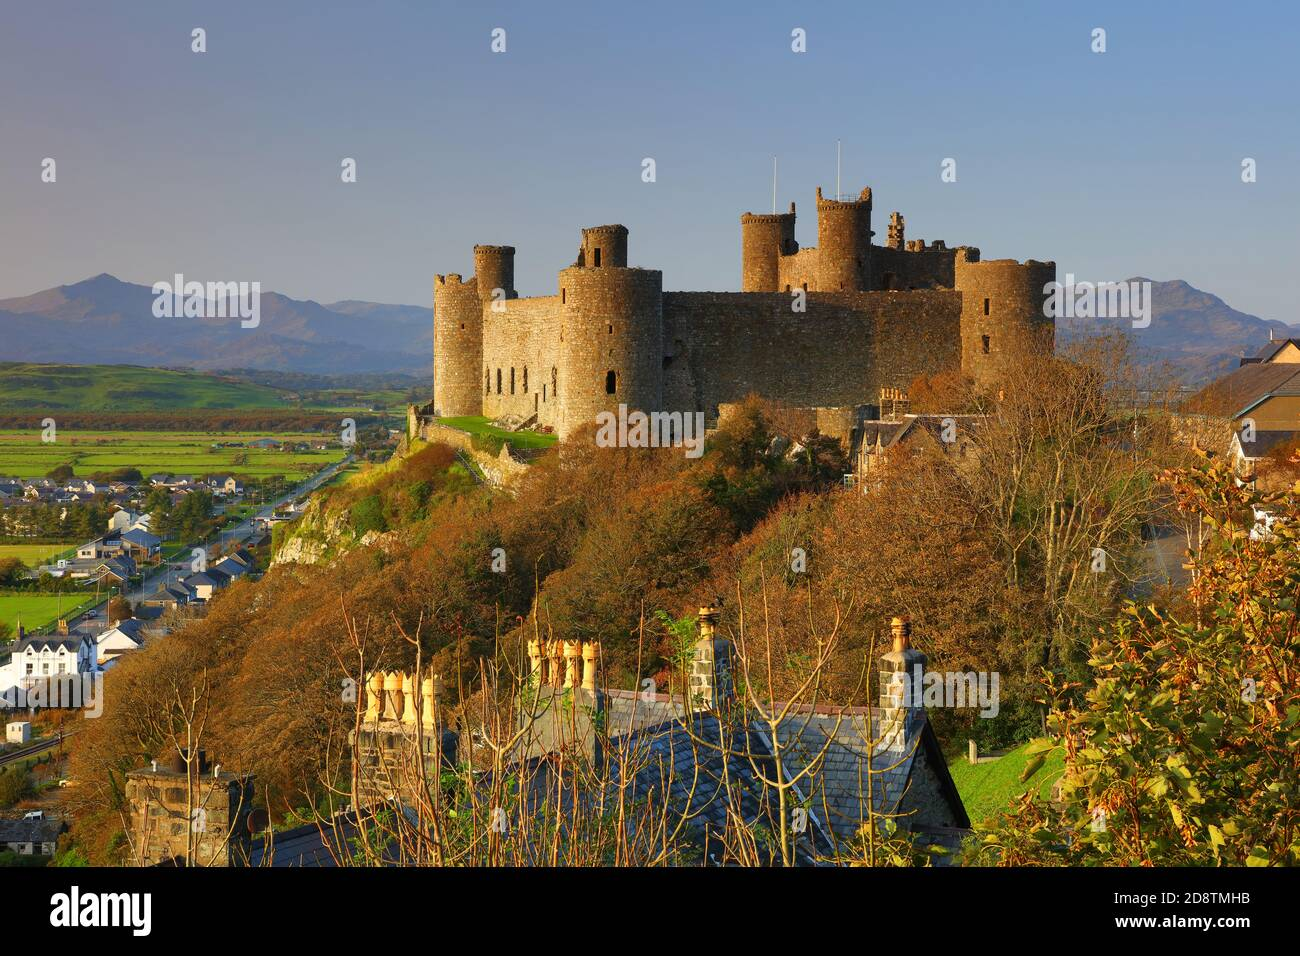 Harlech Castle in late evening sunlight and blue sky with mountains in the distance, Snowdonia, North Wales, UK. Stock Photo